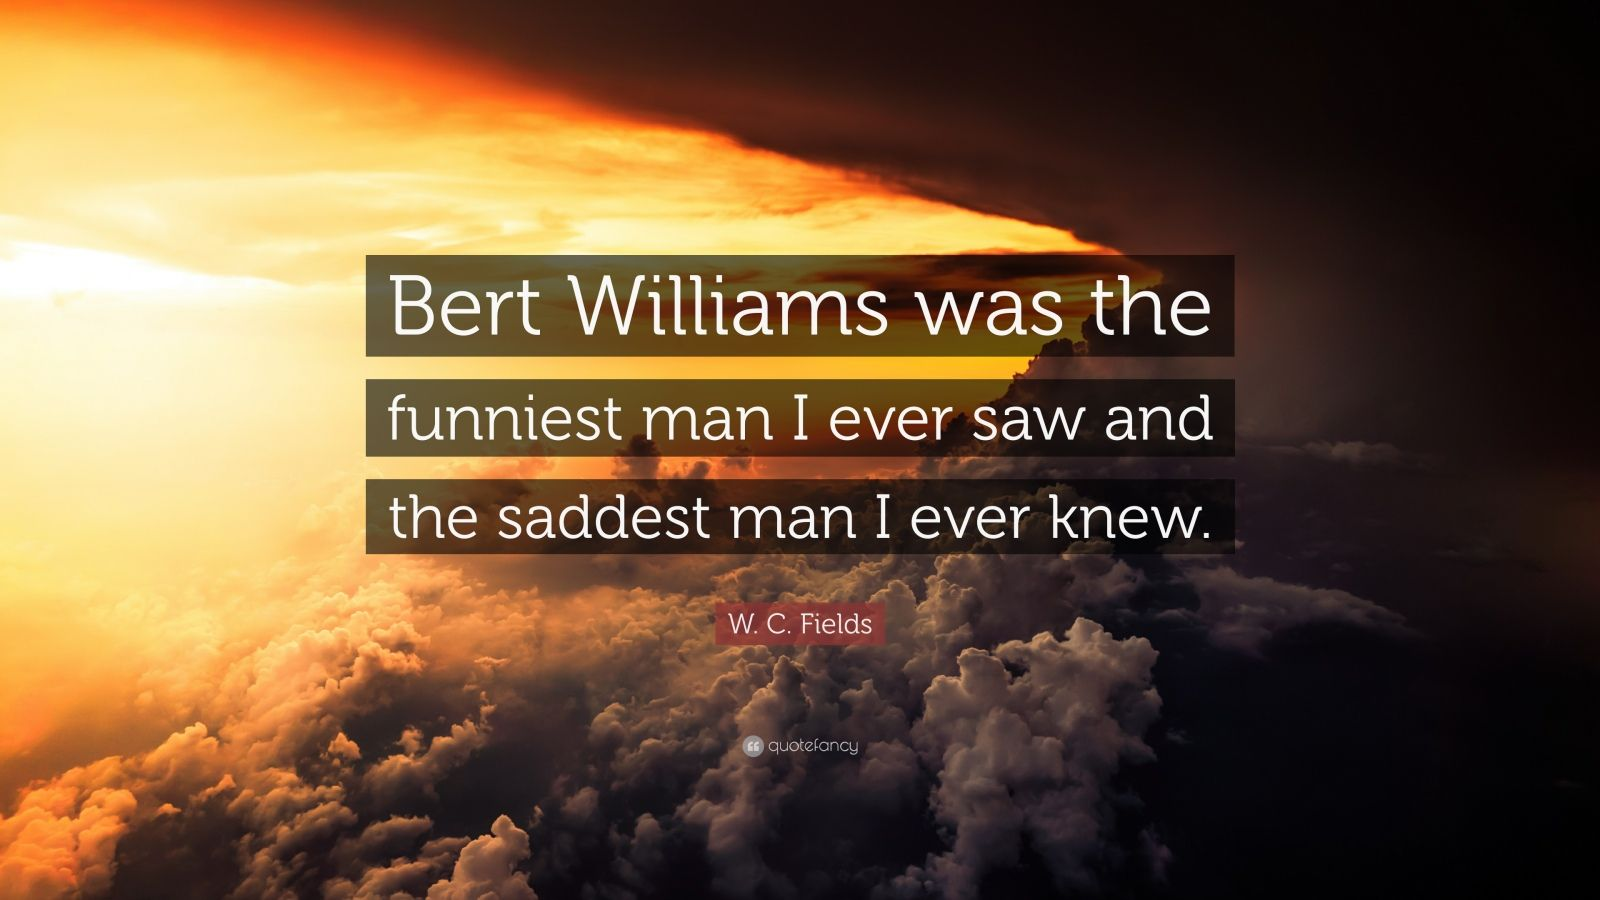 """W. C. Fields Quote: """"Bert Williams was the funniest man I ever saw and the saddest man I ever knew."""""""